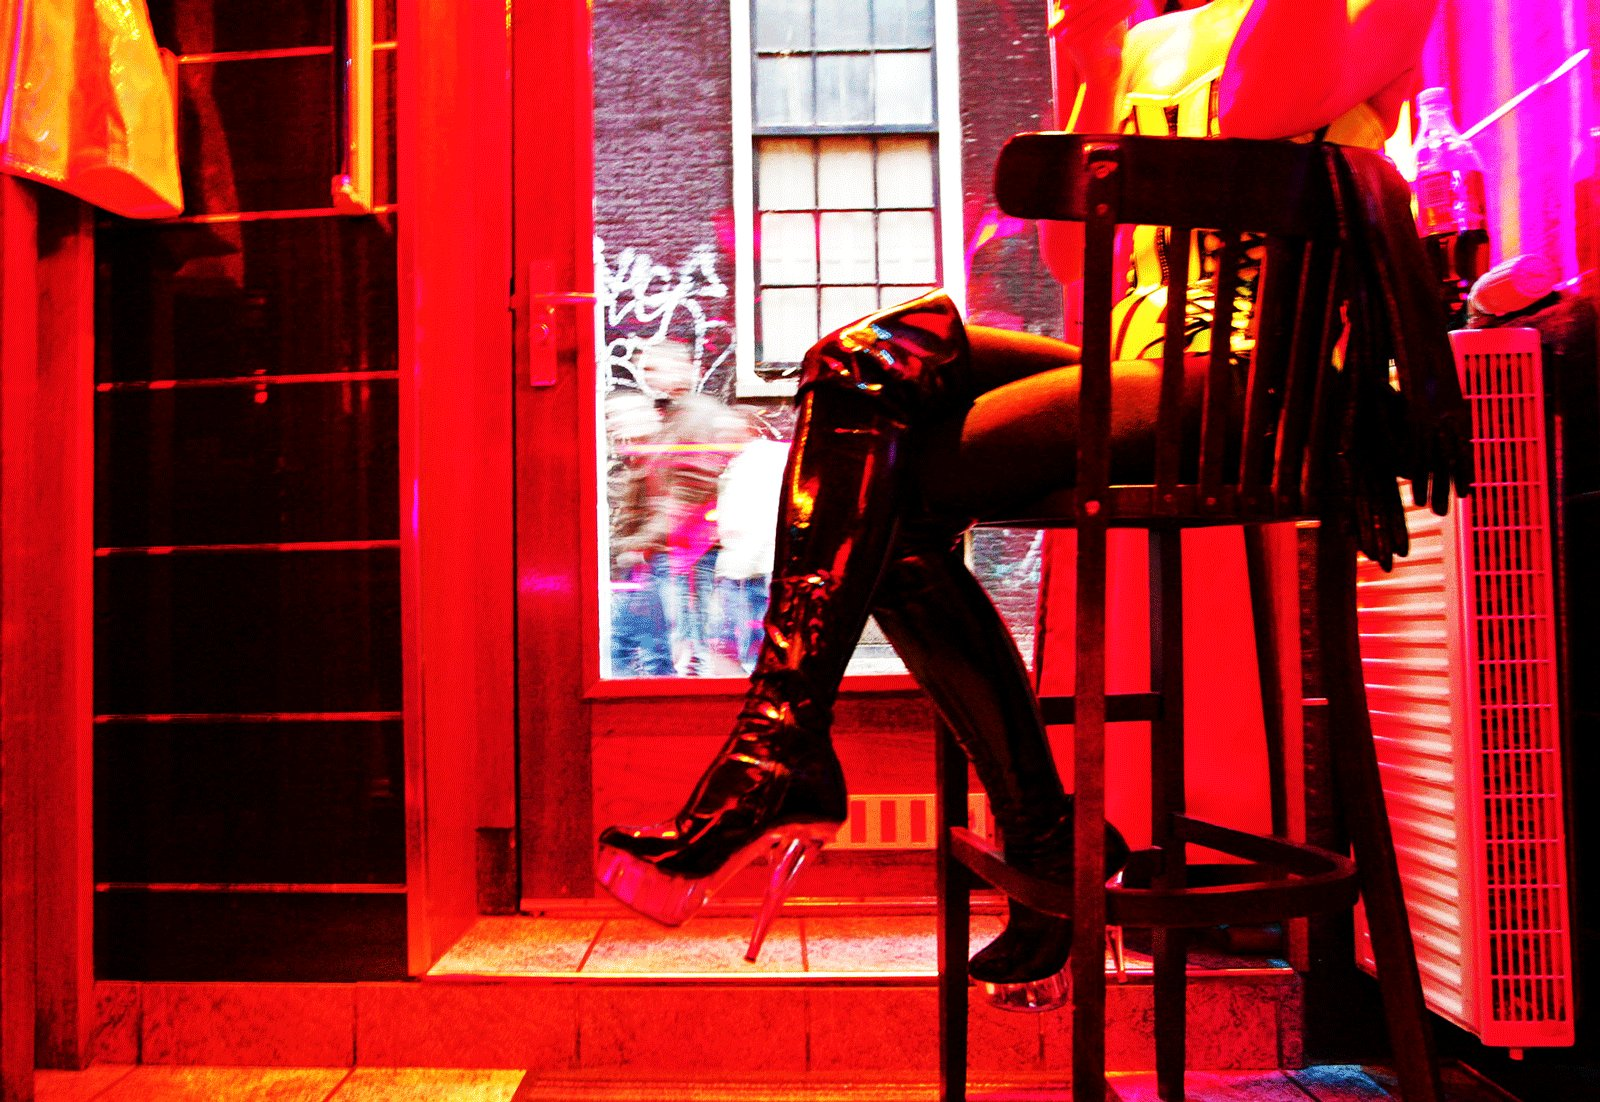 How to watch red light district window displays in Amsterdam